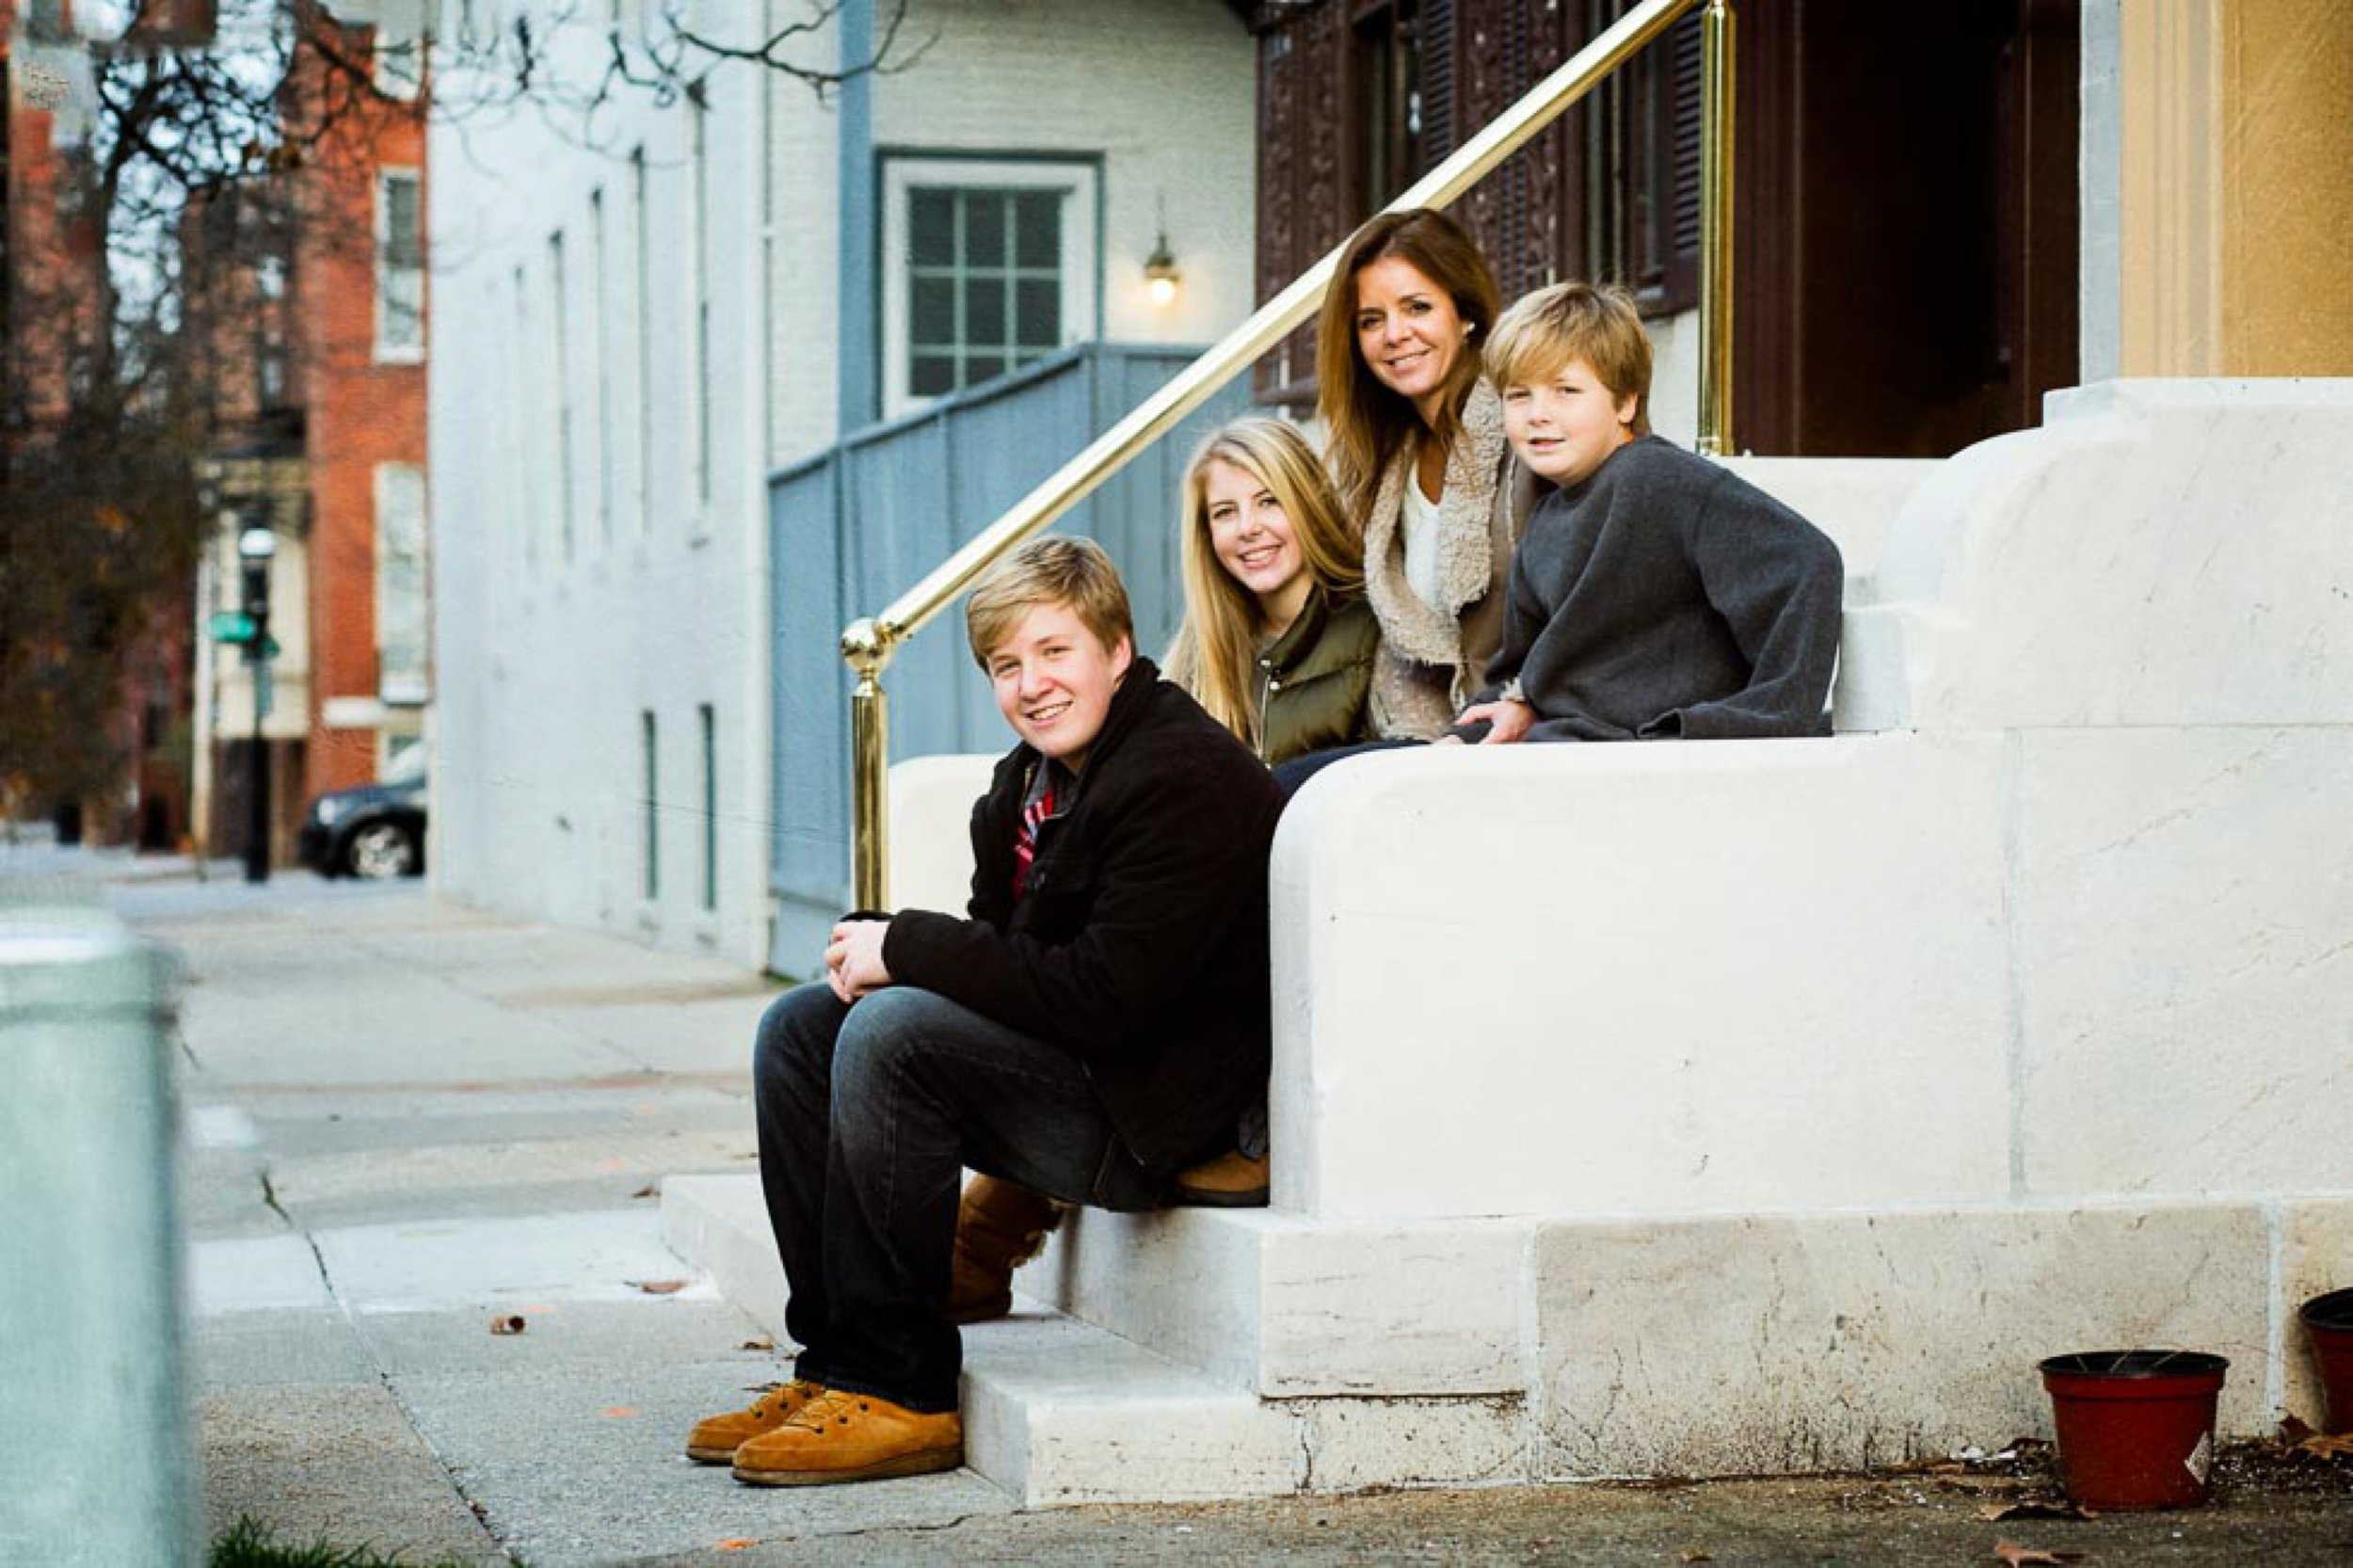 Mom sitting with her three awesome kids on a stoop.